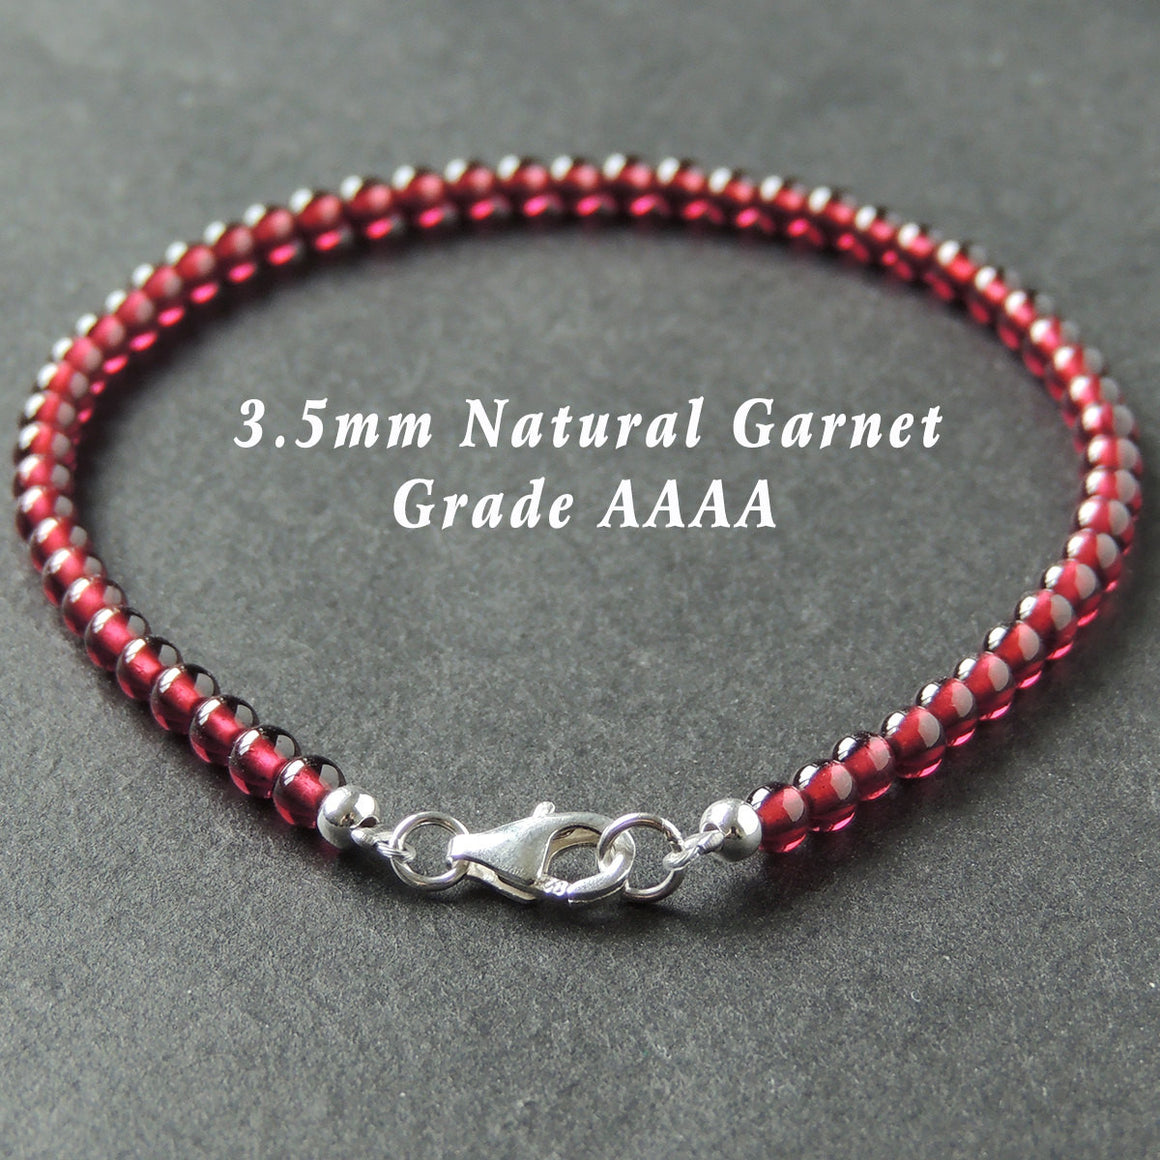 3.5mm Grade AAAA Garnet Healing Gemstone Bracelet with S925 Sterling Silver Spacer Beads & Clasp - Handmade by Gem & Silver BR710